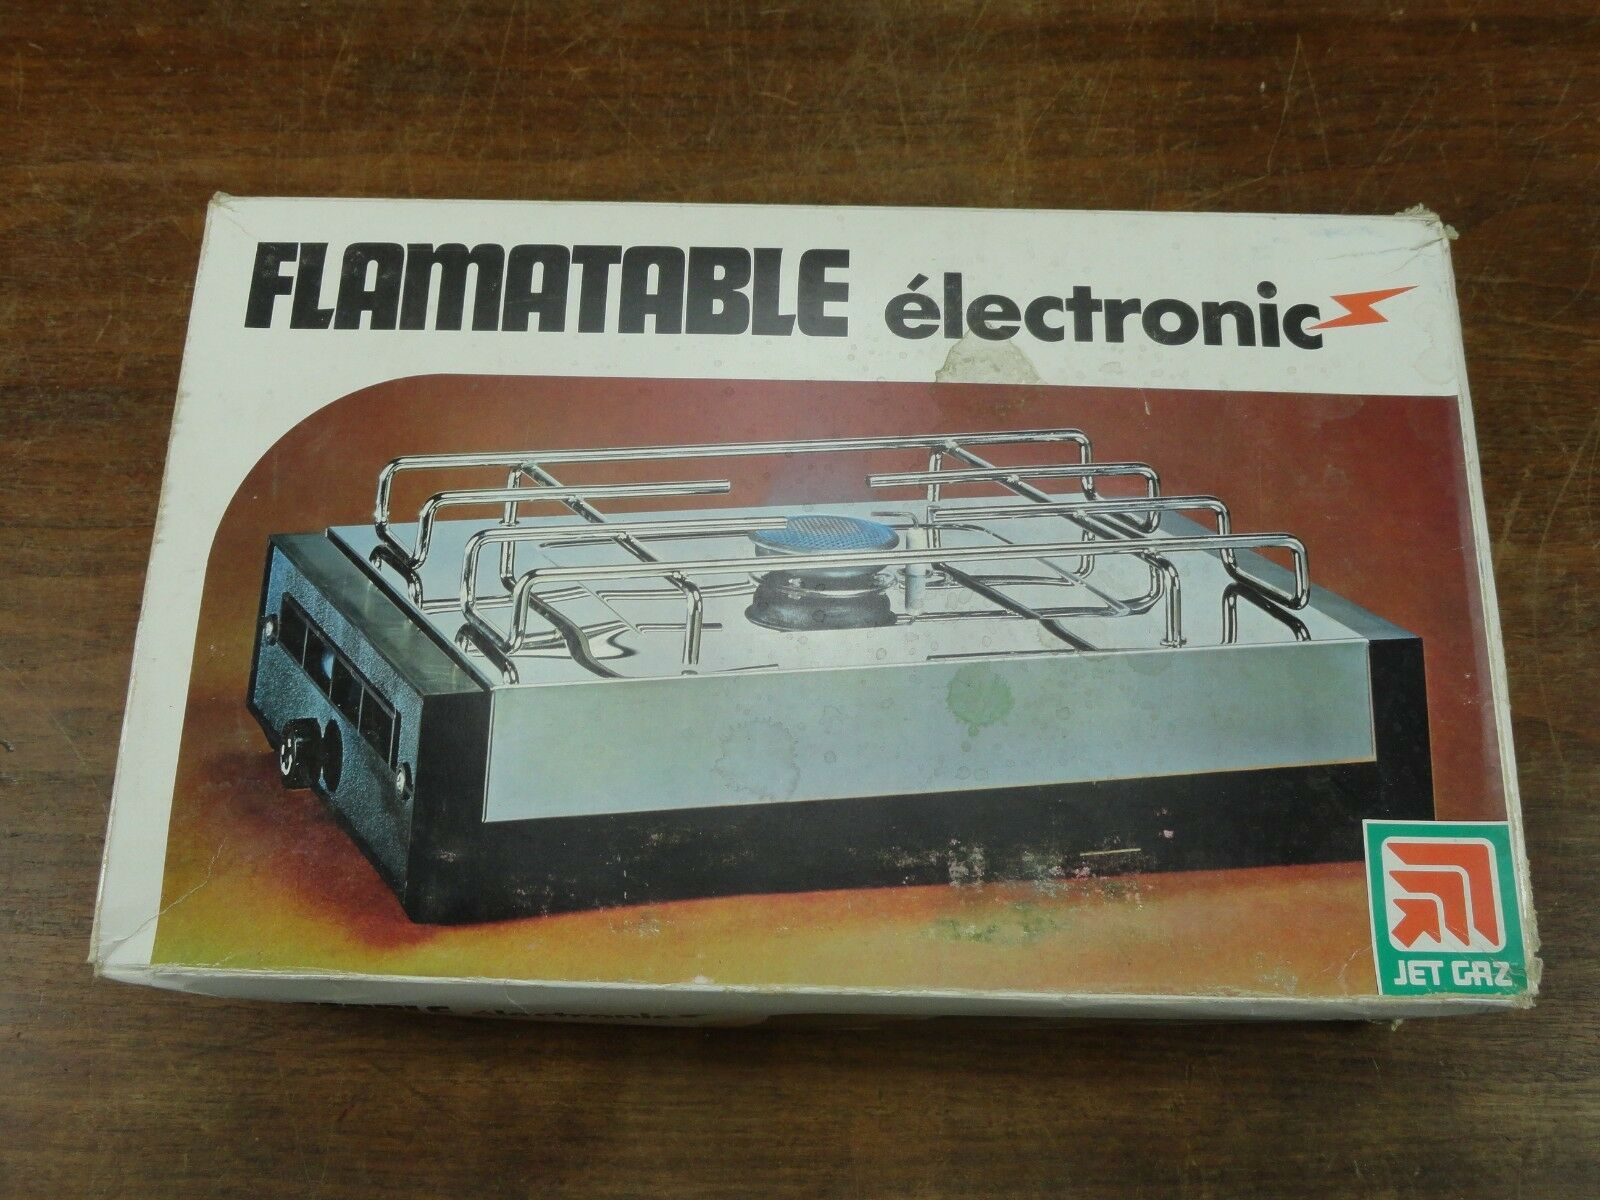 NOS Vintage Jet Gaz Flamatable Electronic Camp Stove  Never been used